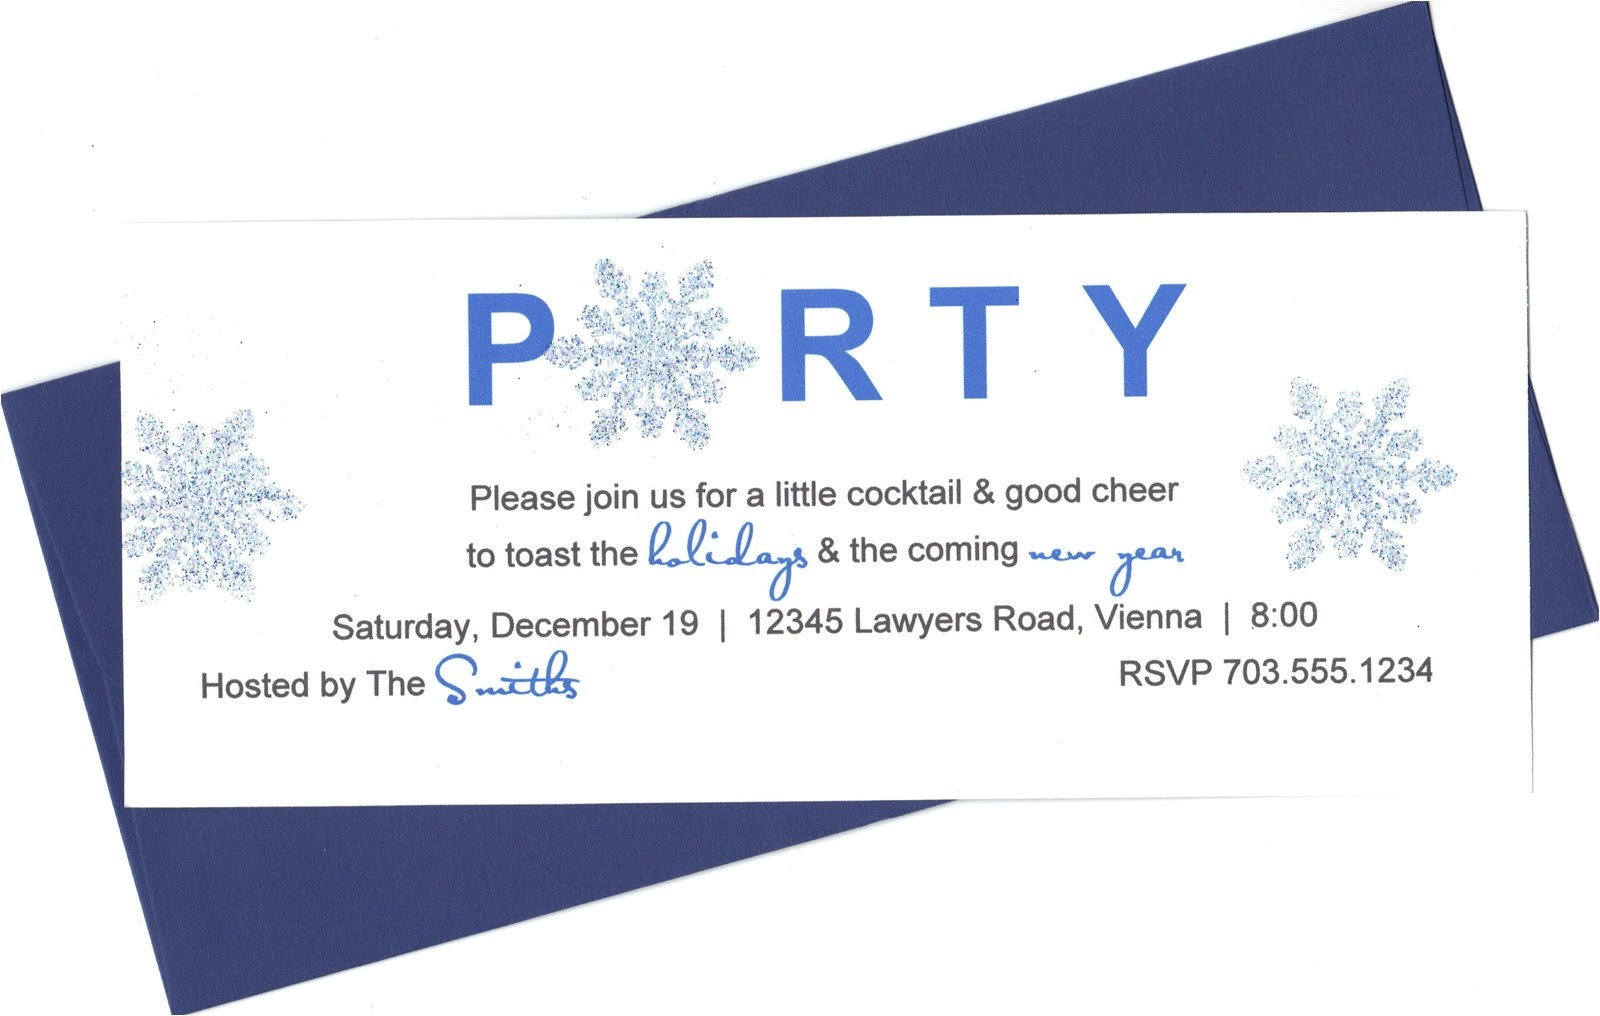 promotion party invitation emailsample